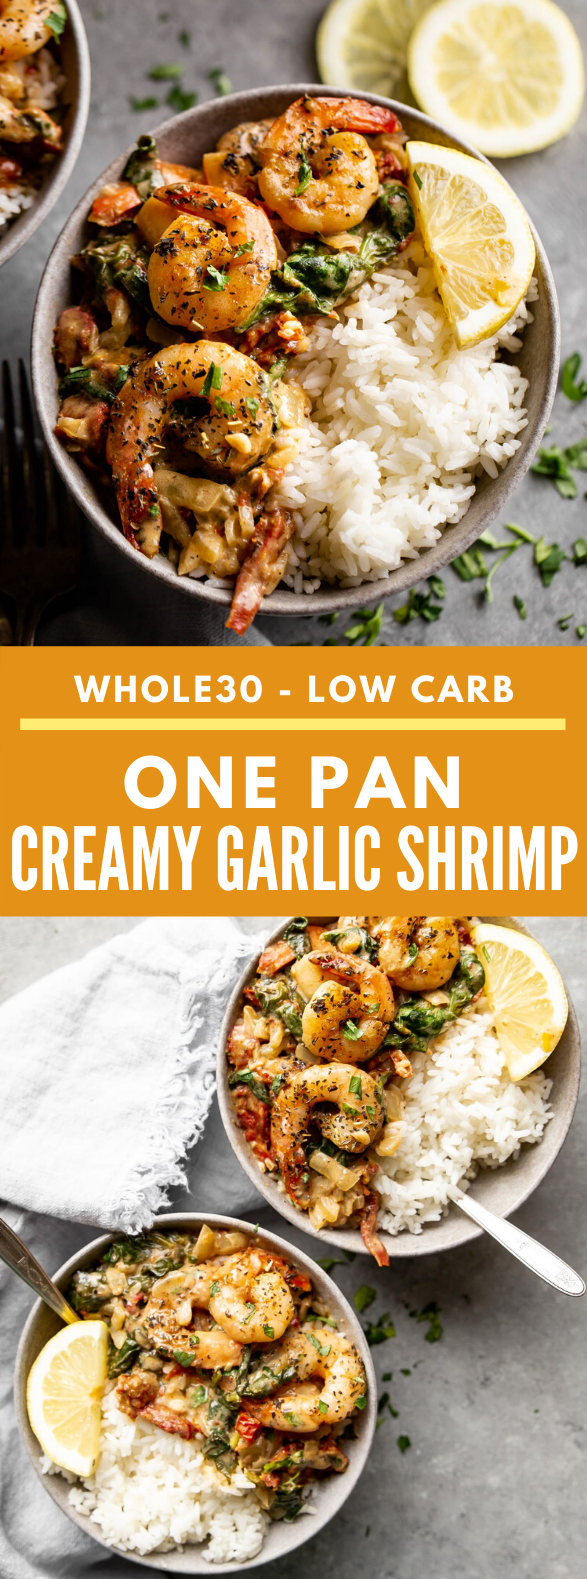 ONE PAN CREAMY GARLIC SHRIMP #whole30 #paleo